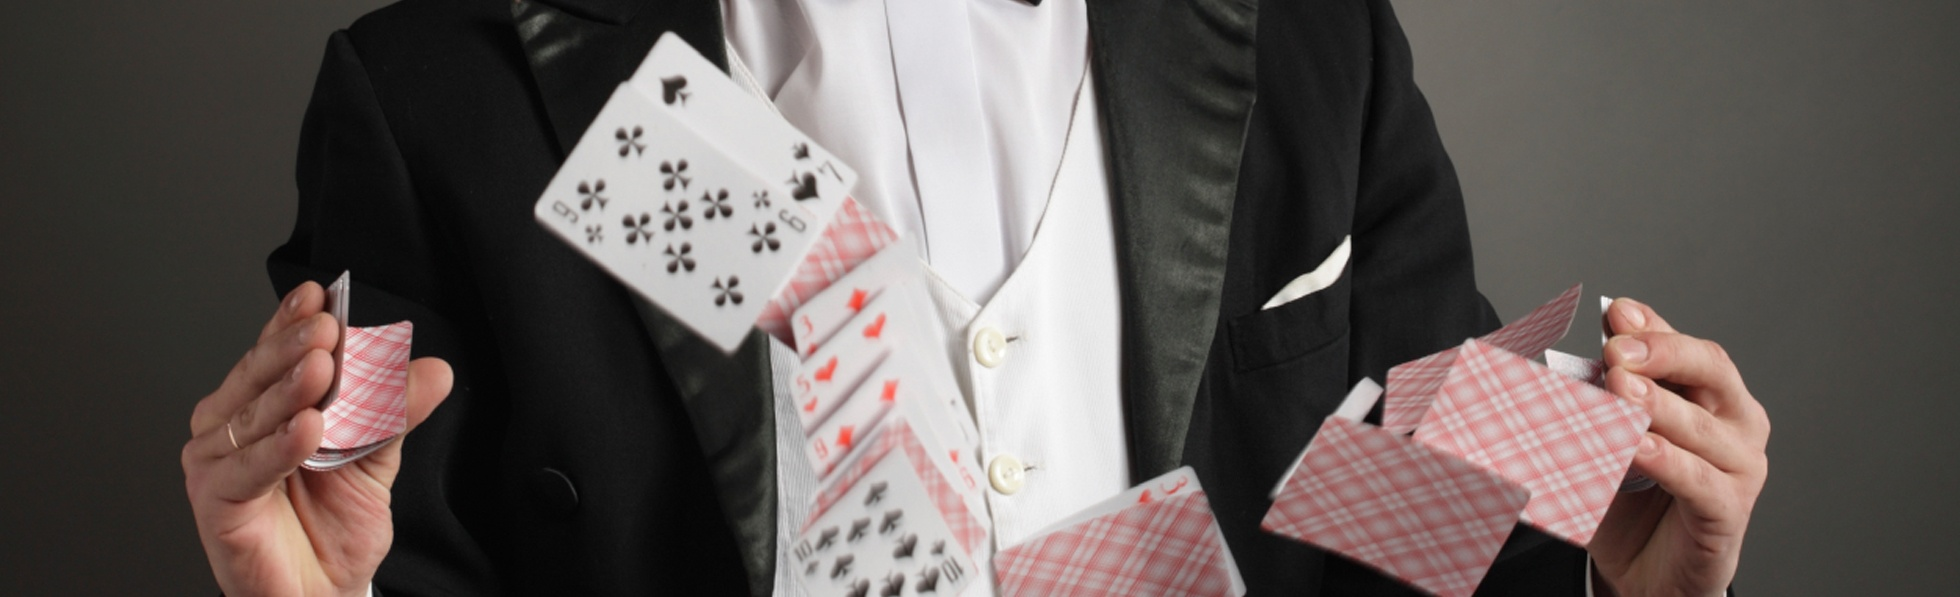 How to Book More Magician Events